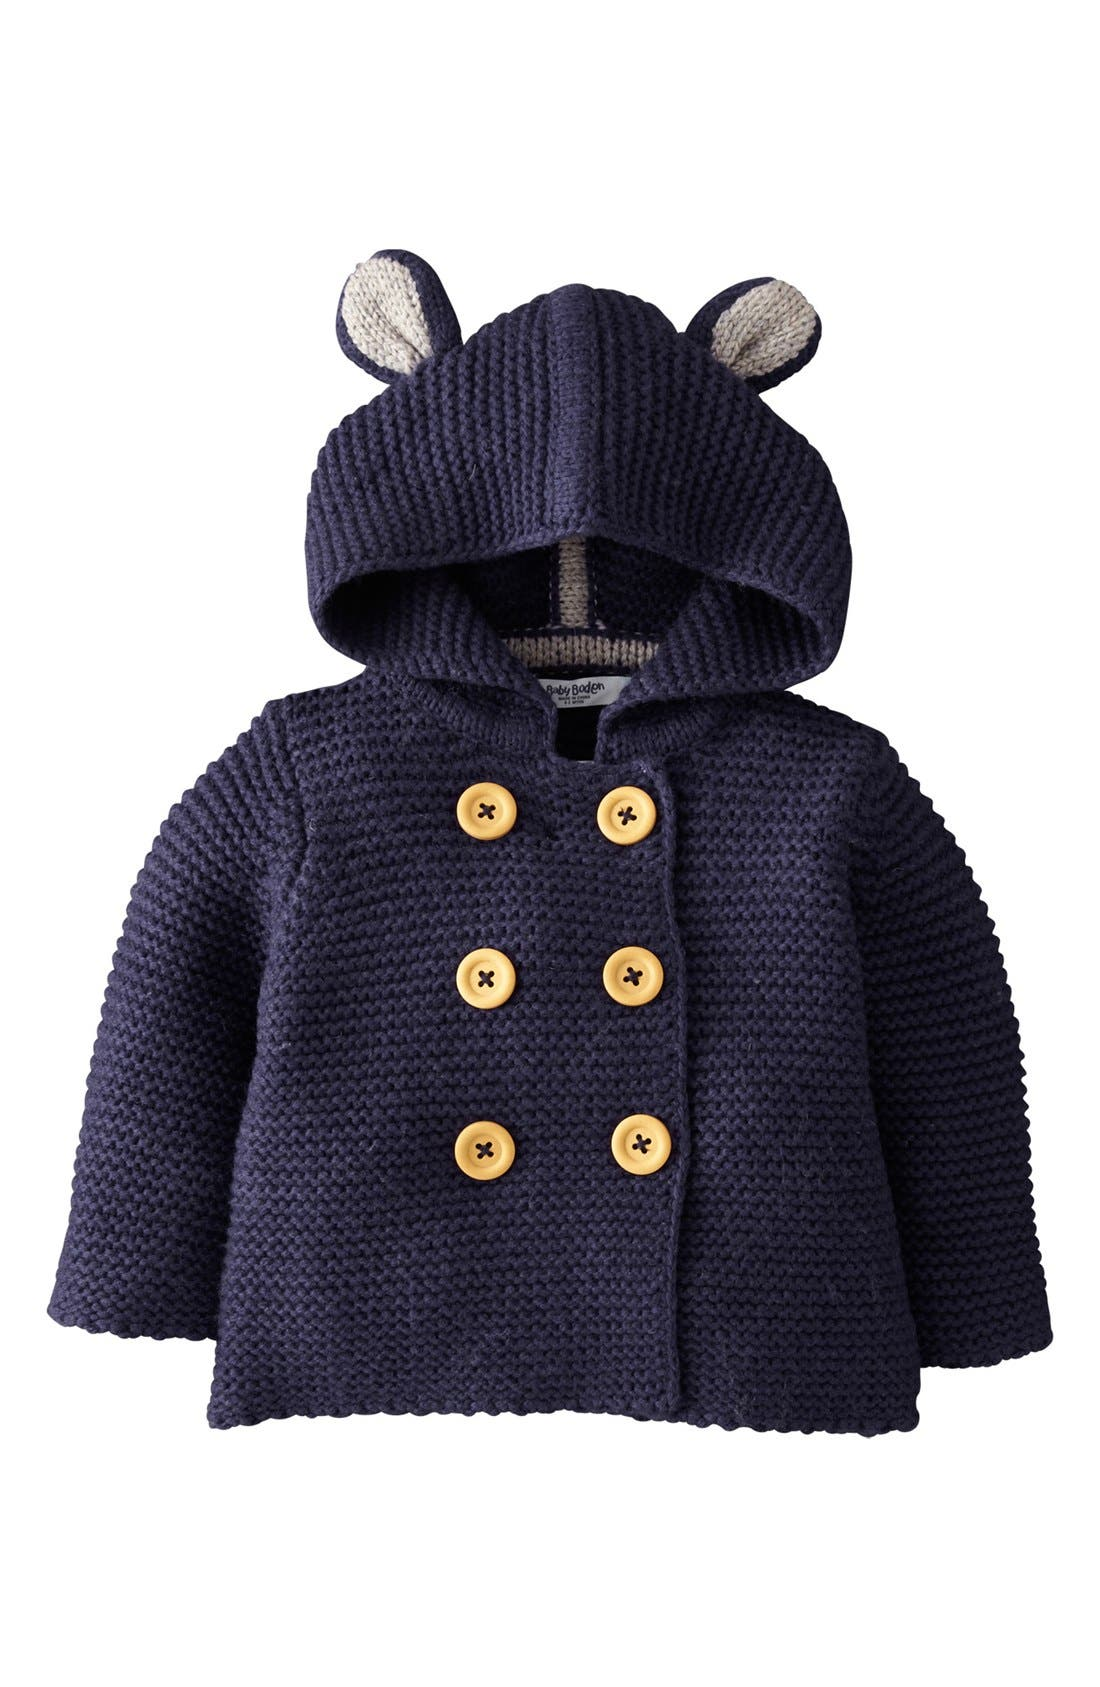 Main Image - Mini Boden Knit Mouse Ears Jacket (Baby Boys)